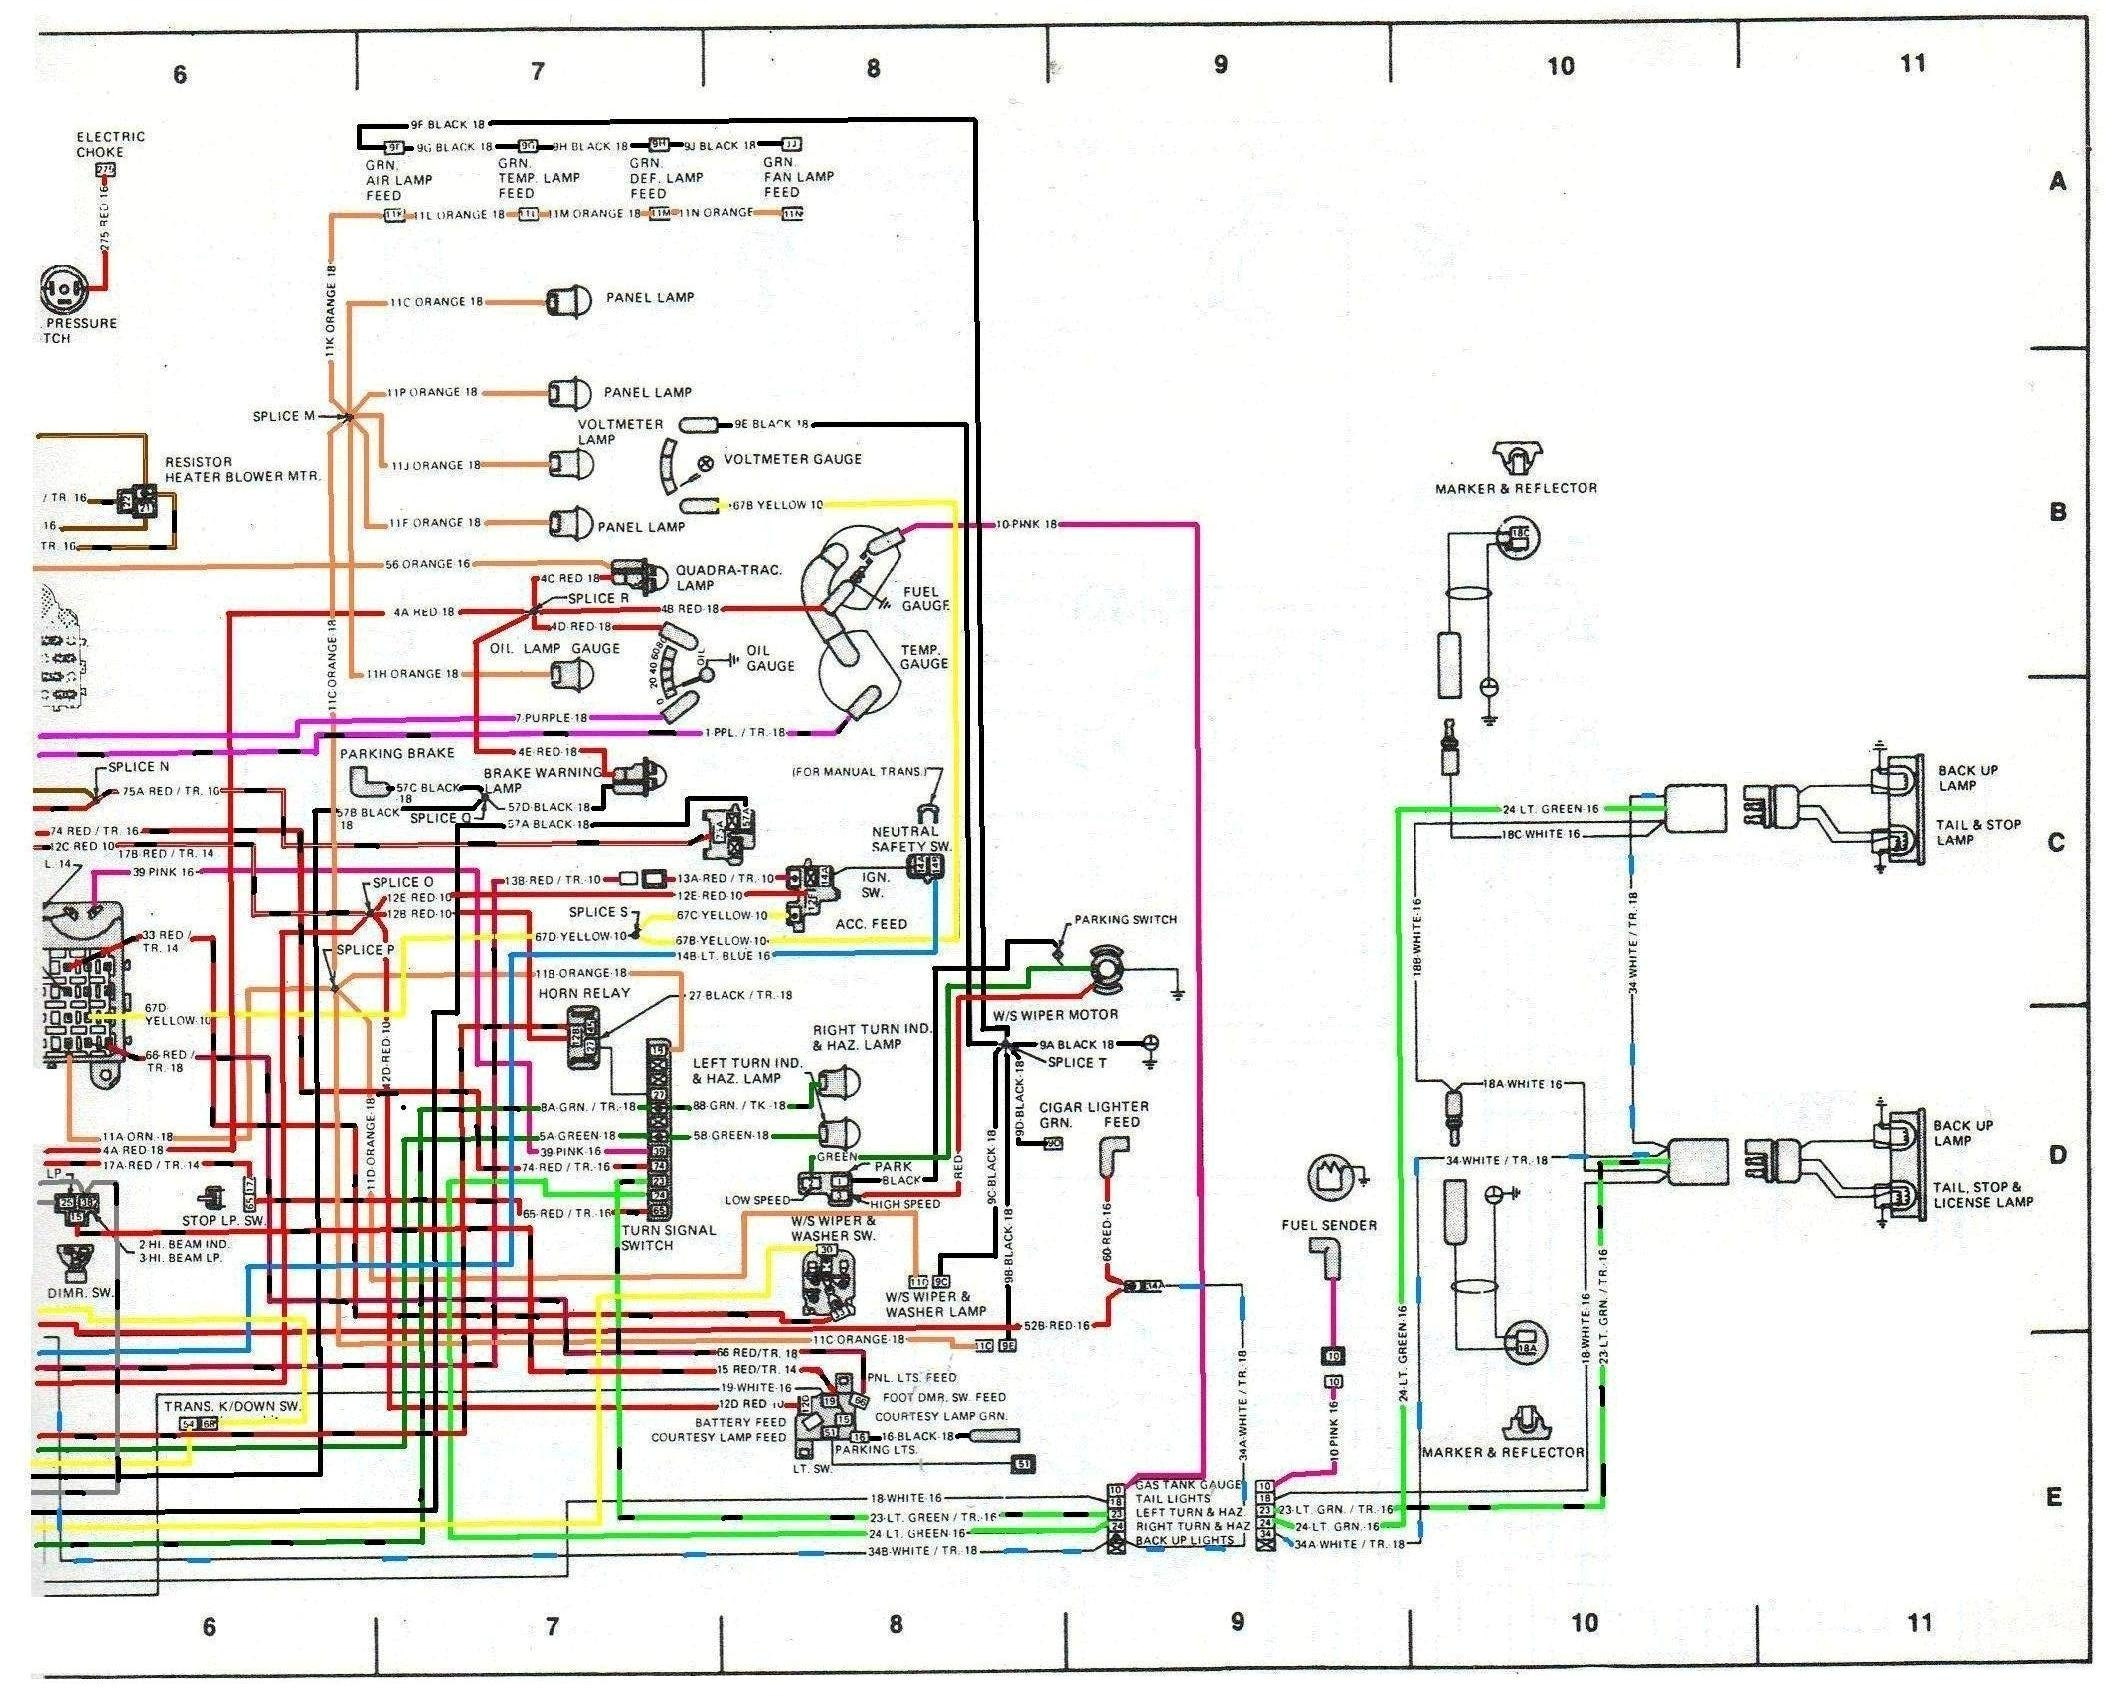 74 cj5 wiringdiagram wedocable schema diagram database 73 jeep cj5 wiring diagram wiring library 74 cj5 [ 2120 x 1700 Pixel ]